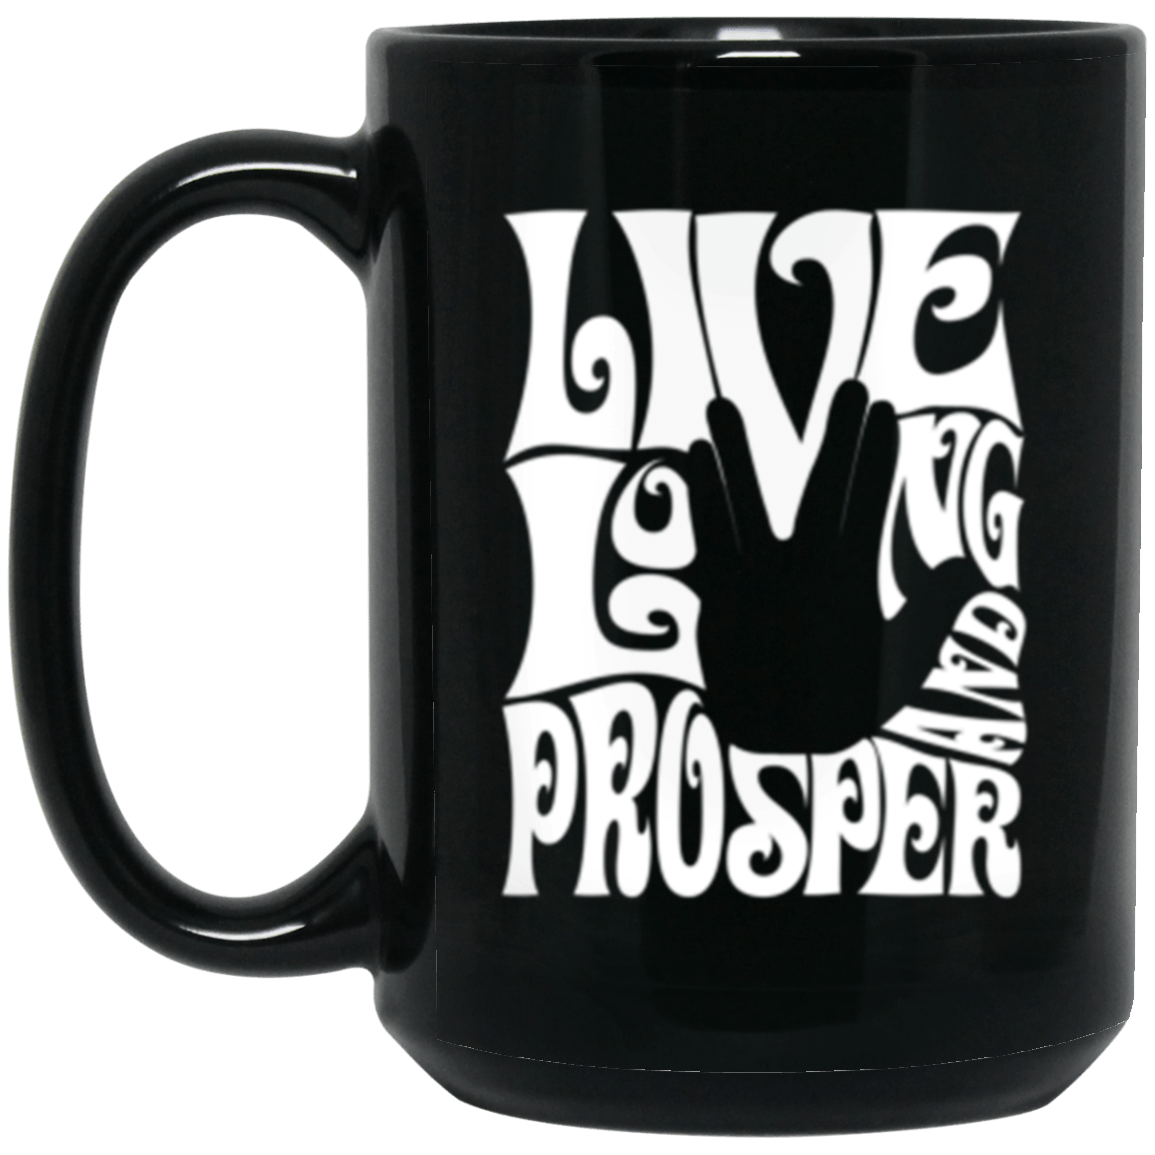 Prosper Retro Black Mug 15oz (2-sided)